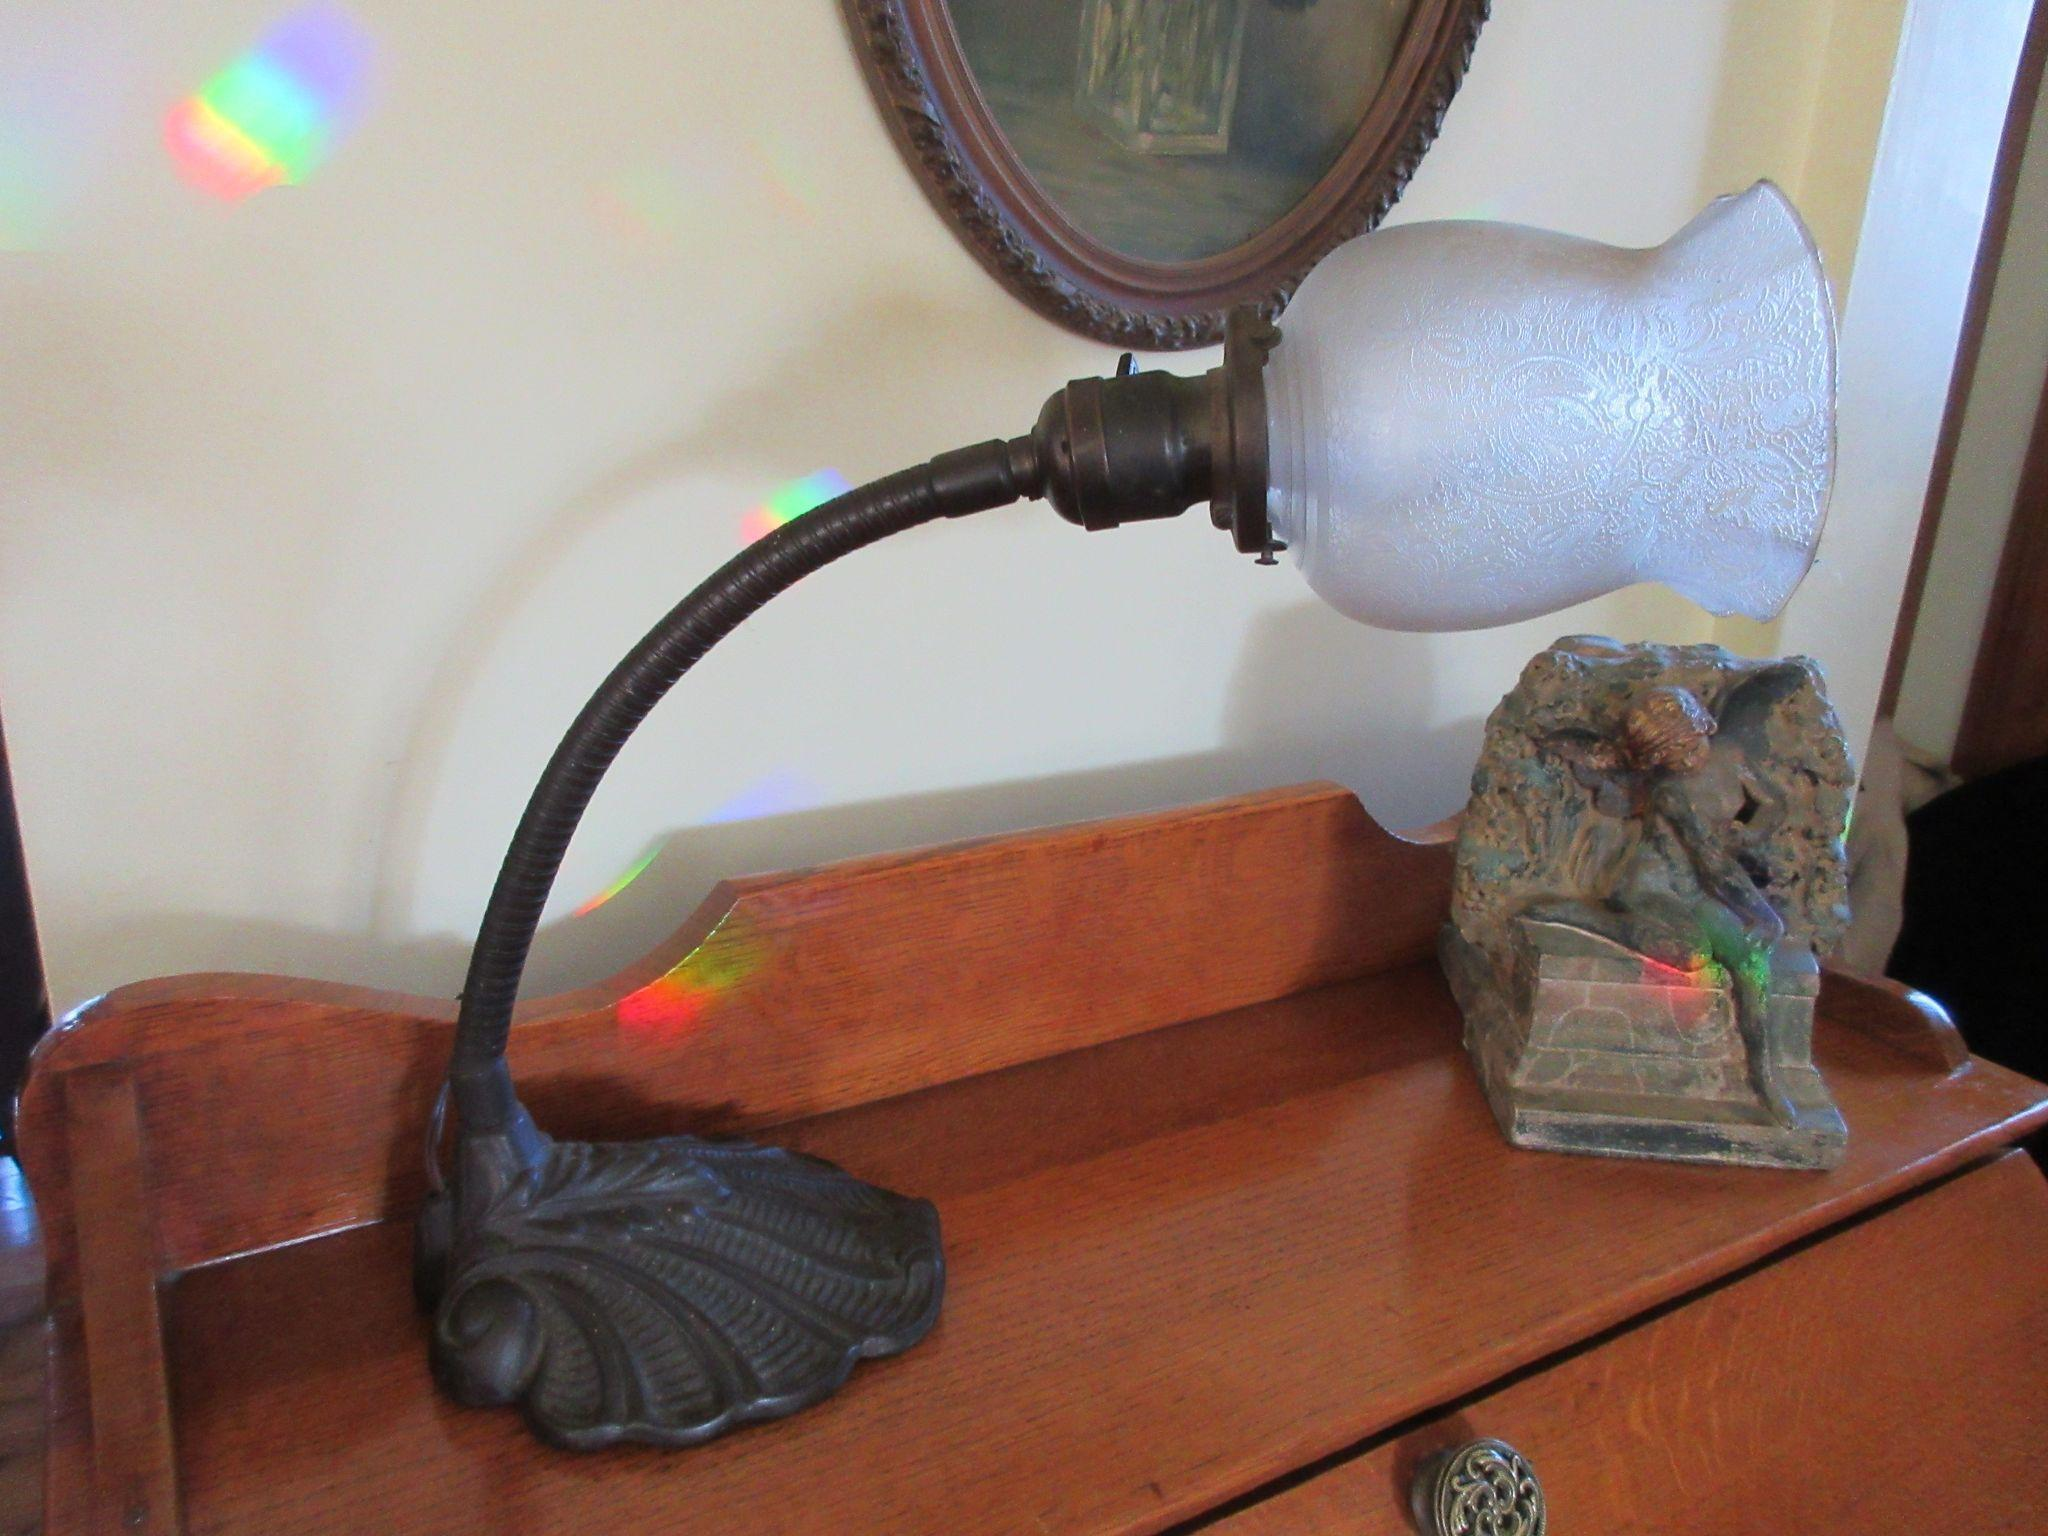 Art Nouveau Iron Gooseneck Desk Lamp, Boudoir Lamp, Pat. 1890, H.M.Co